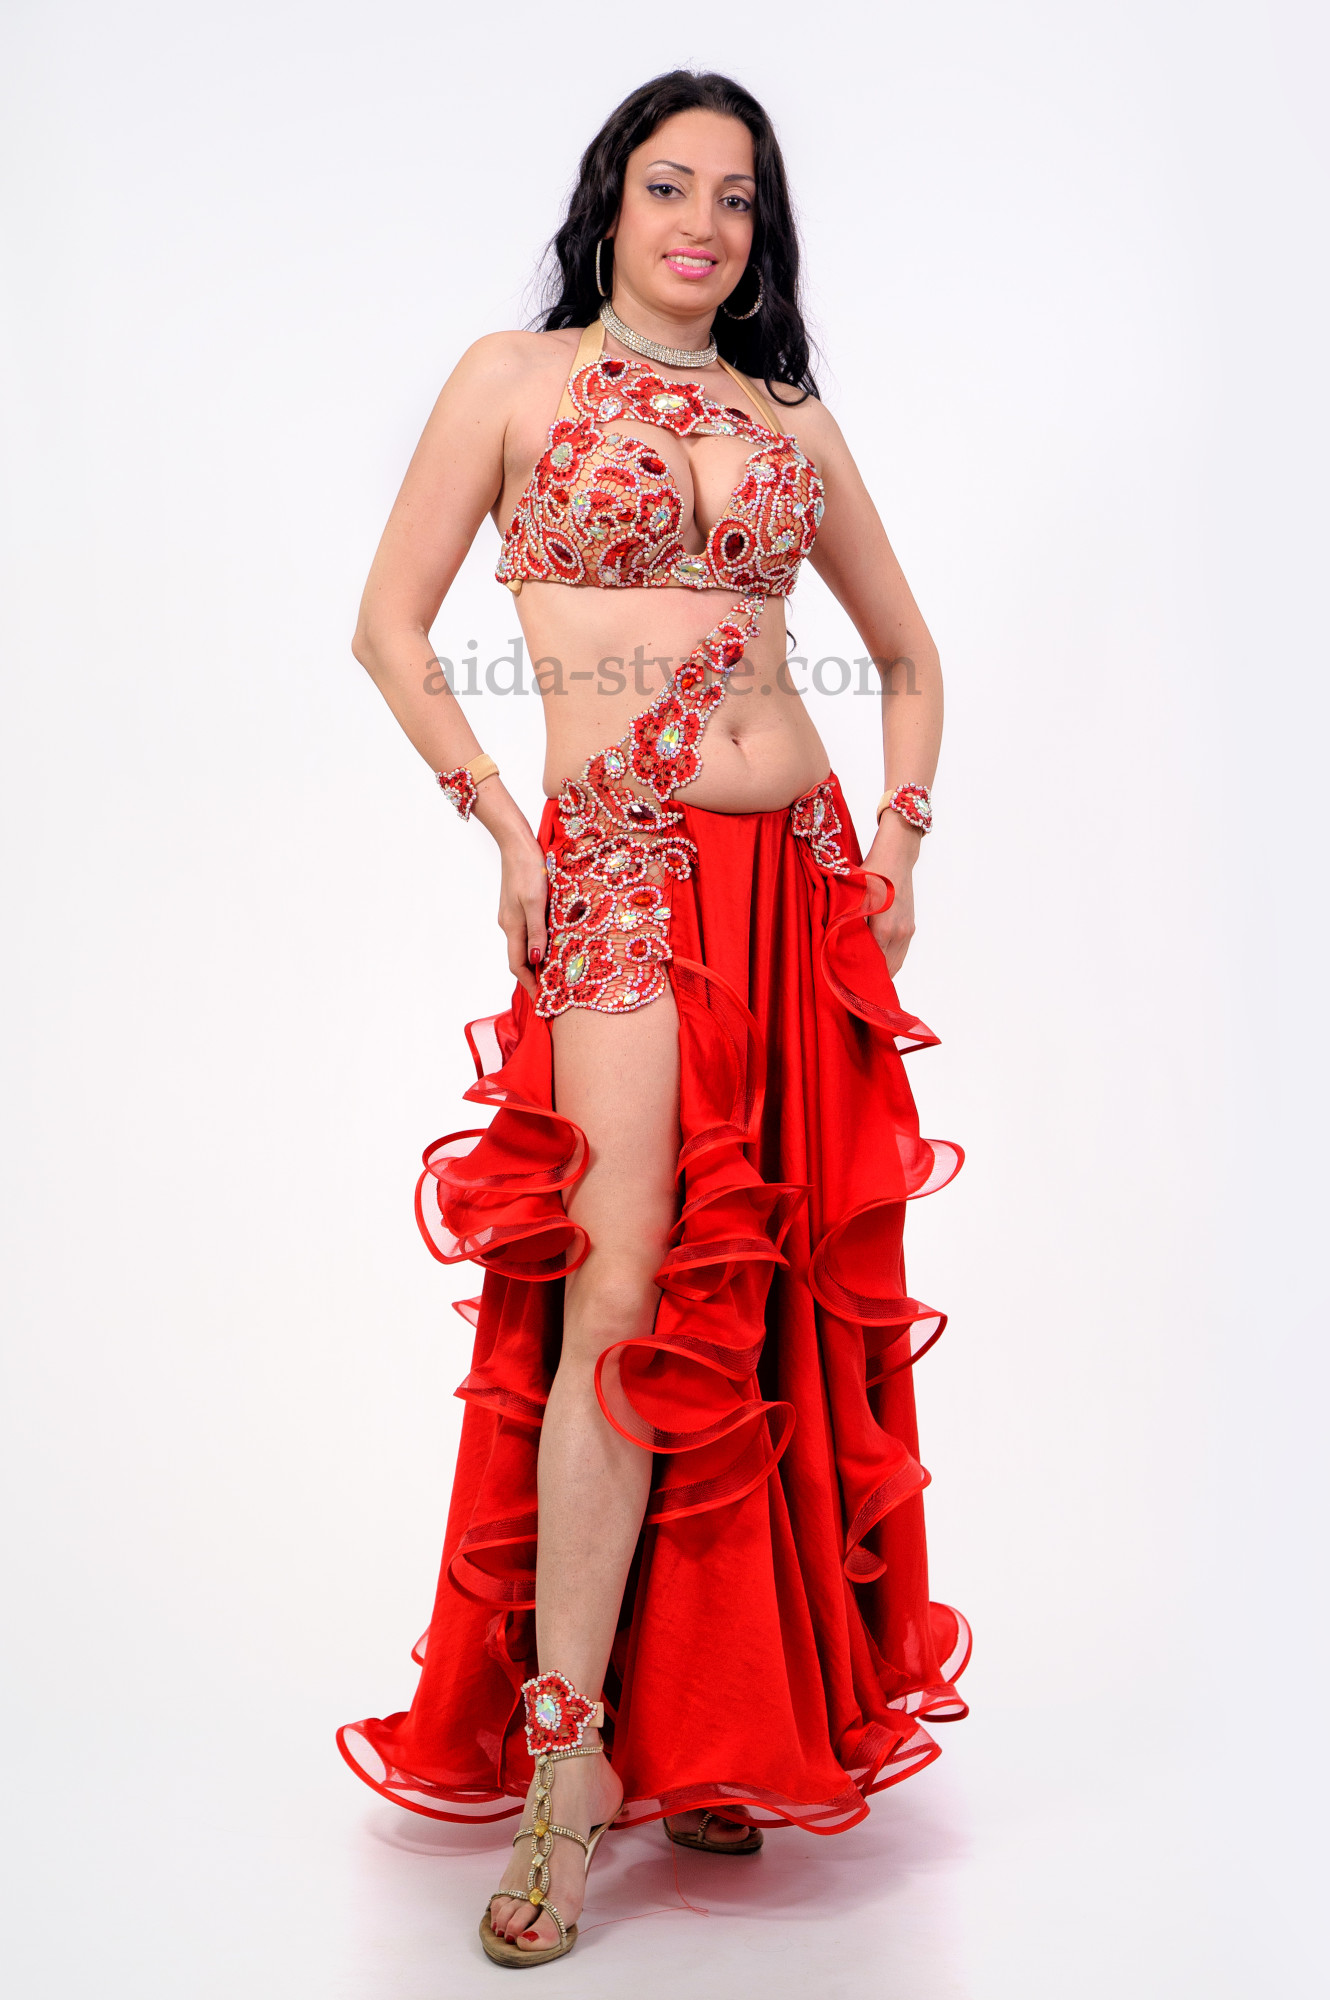 Professional belly dance dress decorated with artificial flowers and stones.